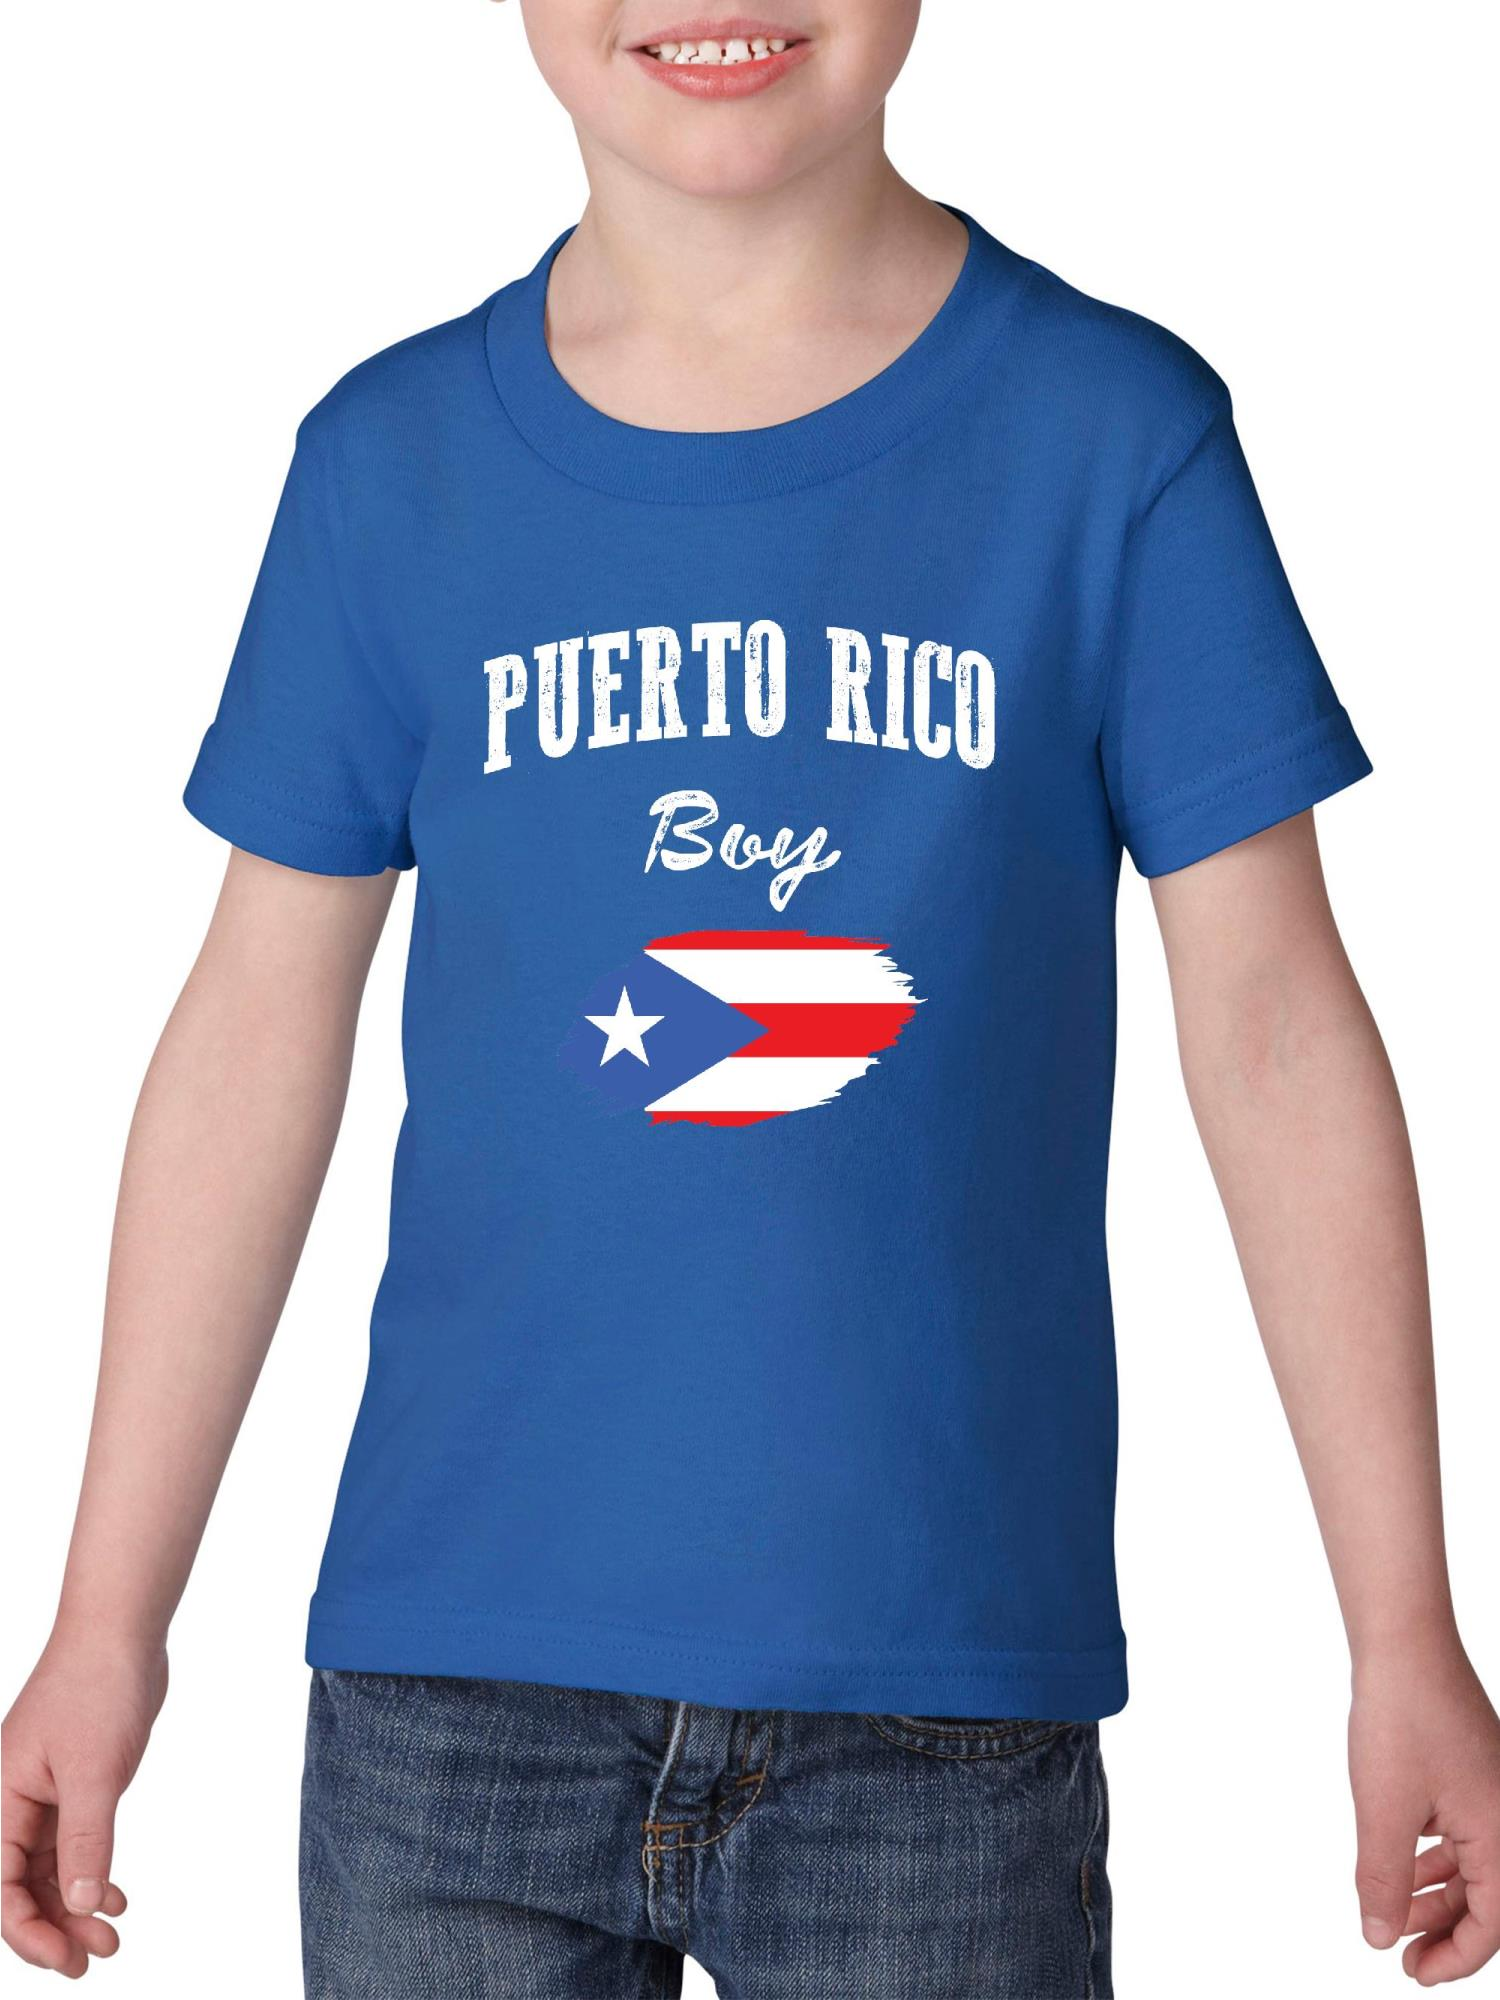 Puerto Rico Strong Support Puerto Rico Kids Boys Girls O-Neck Long Sleeve Shirt Tee for Toddlers